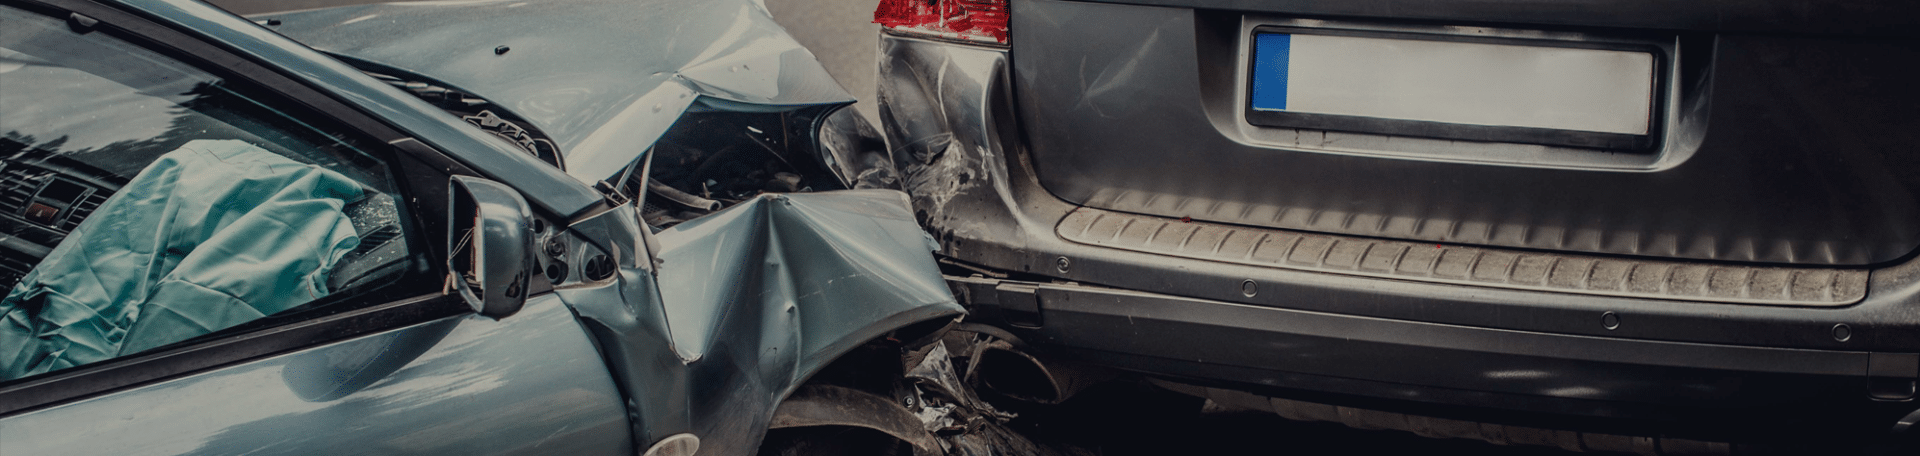 Multi-Vehicle Collision on Interstate 280 near Trousdale Drive in Burlingame Injures At Least One Person